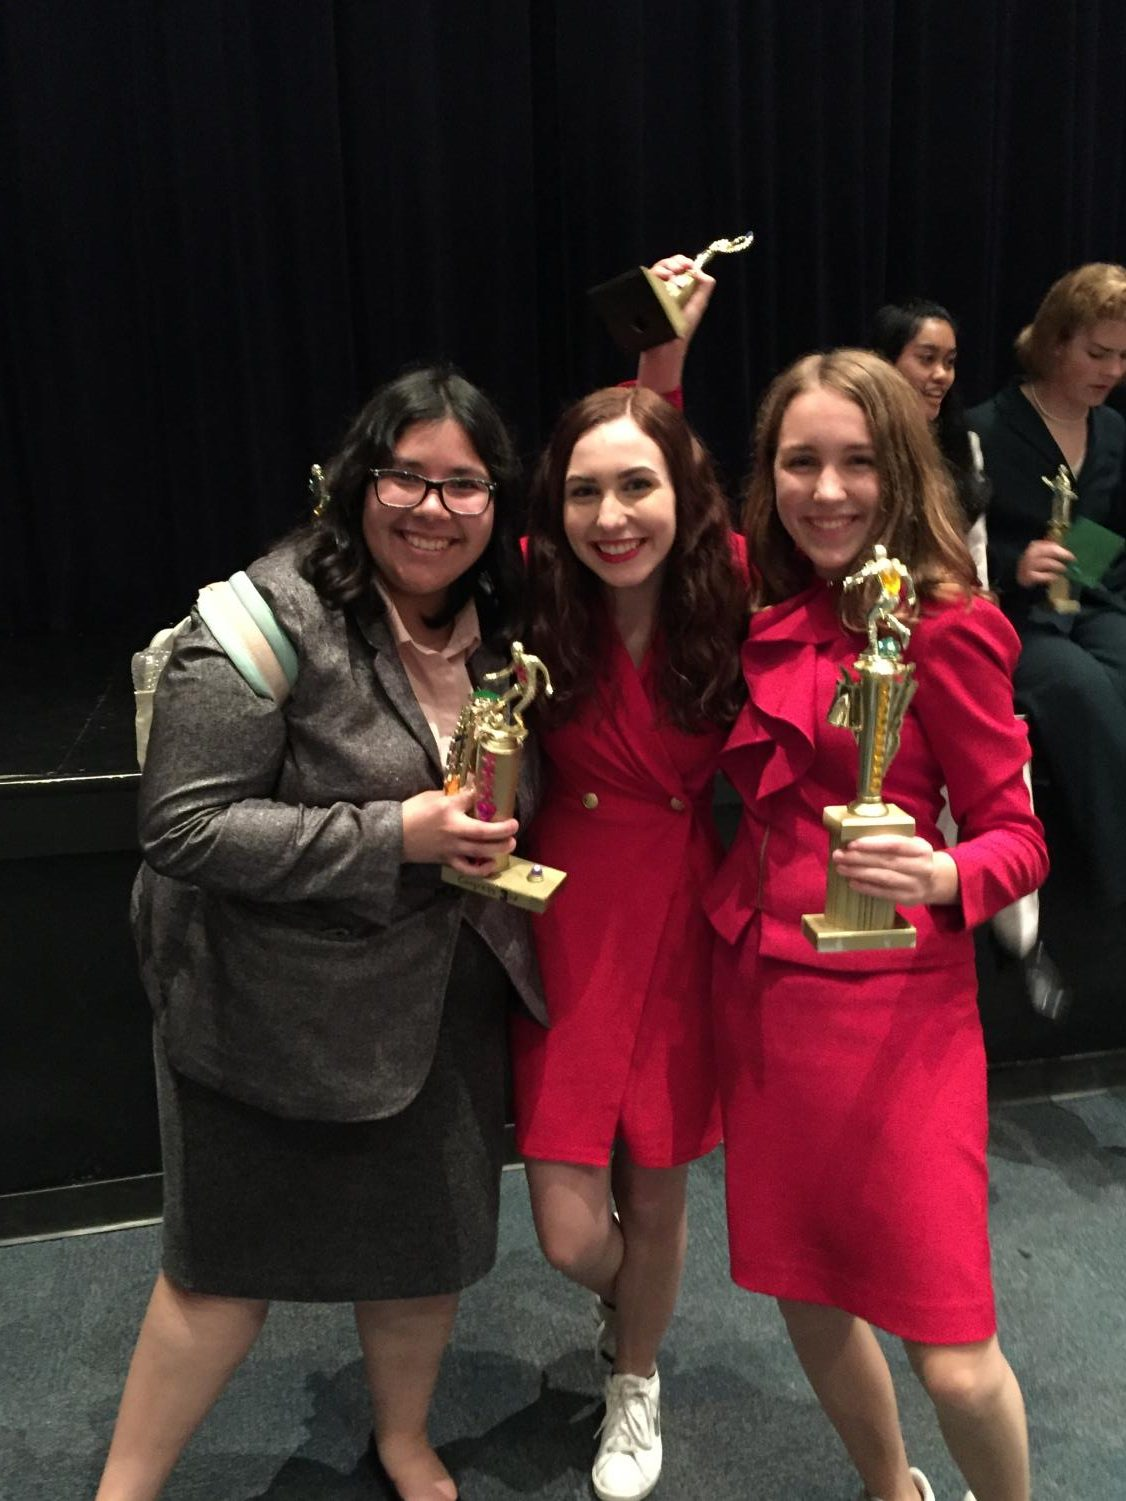 Senior Amy Shreeve, pictured far right by junior Ashlyn Dahl (center), and senior Brianna Rodriguez (far left) was one of the many students who competed at the Speech and Debate tournament this weekend at Anderson High School. James Bowie High School performed exponentially well in the tournament, JBHS had multiple students win individual awards, become congressional debate finalists, and had two new state qualifiers, one being Amy Shreeve.